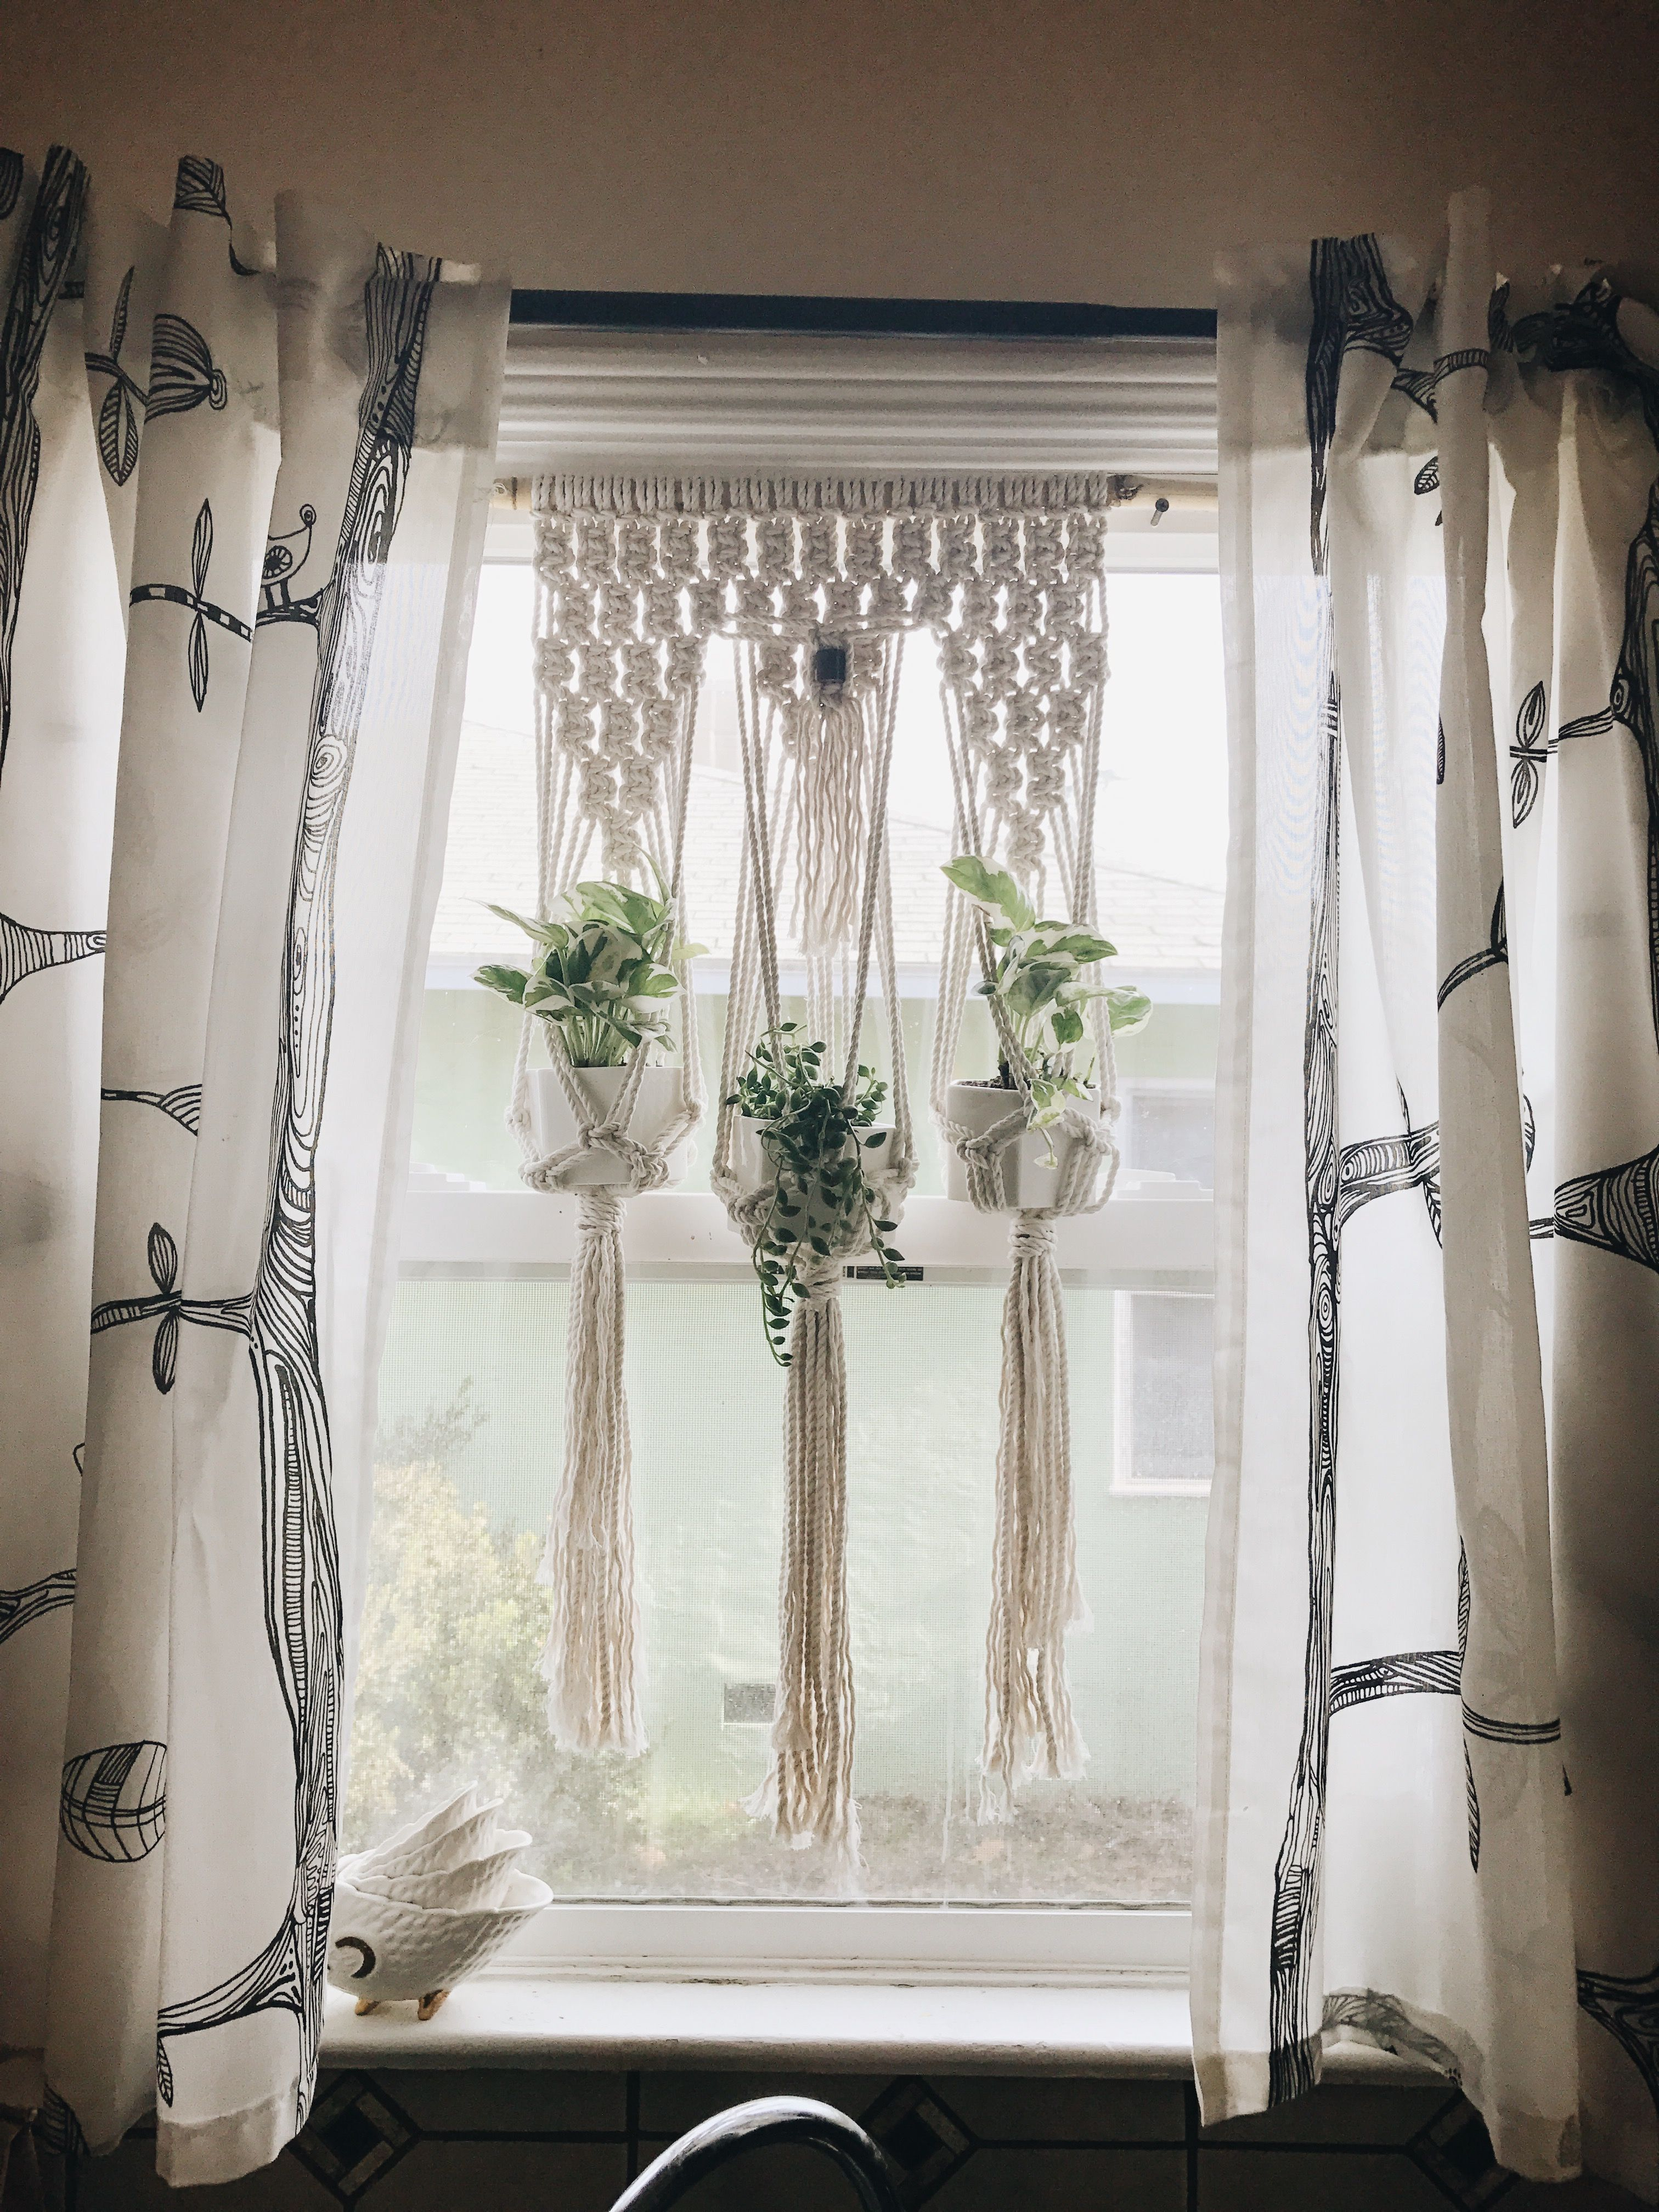 Triple Macrame For Kitchen Window Made With Cotton Rope And